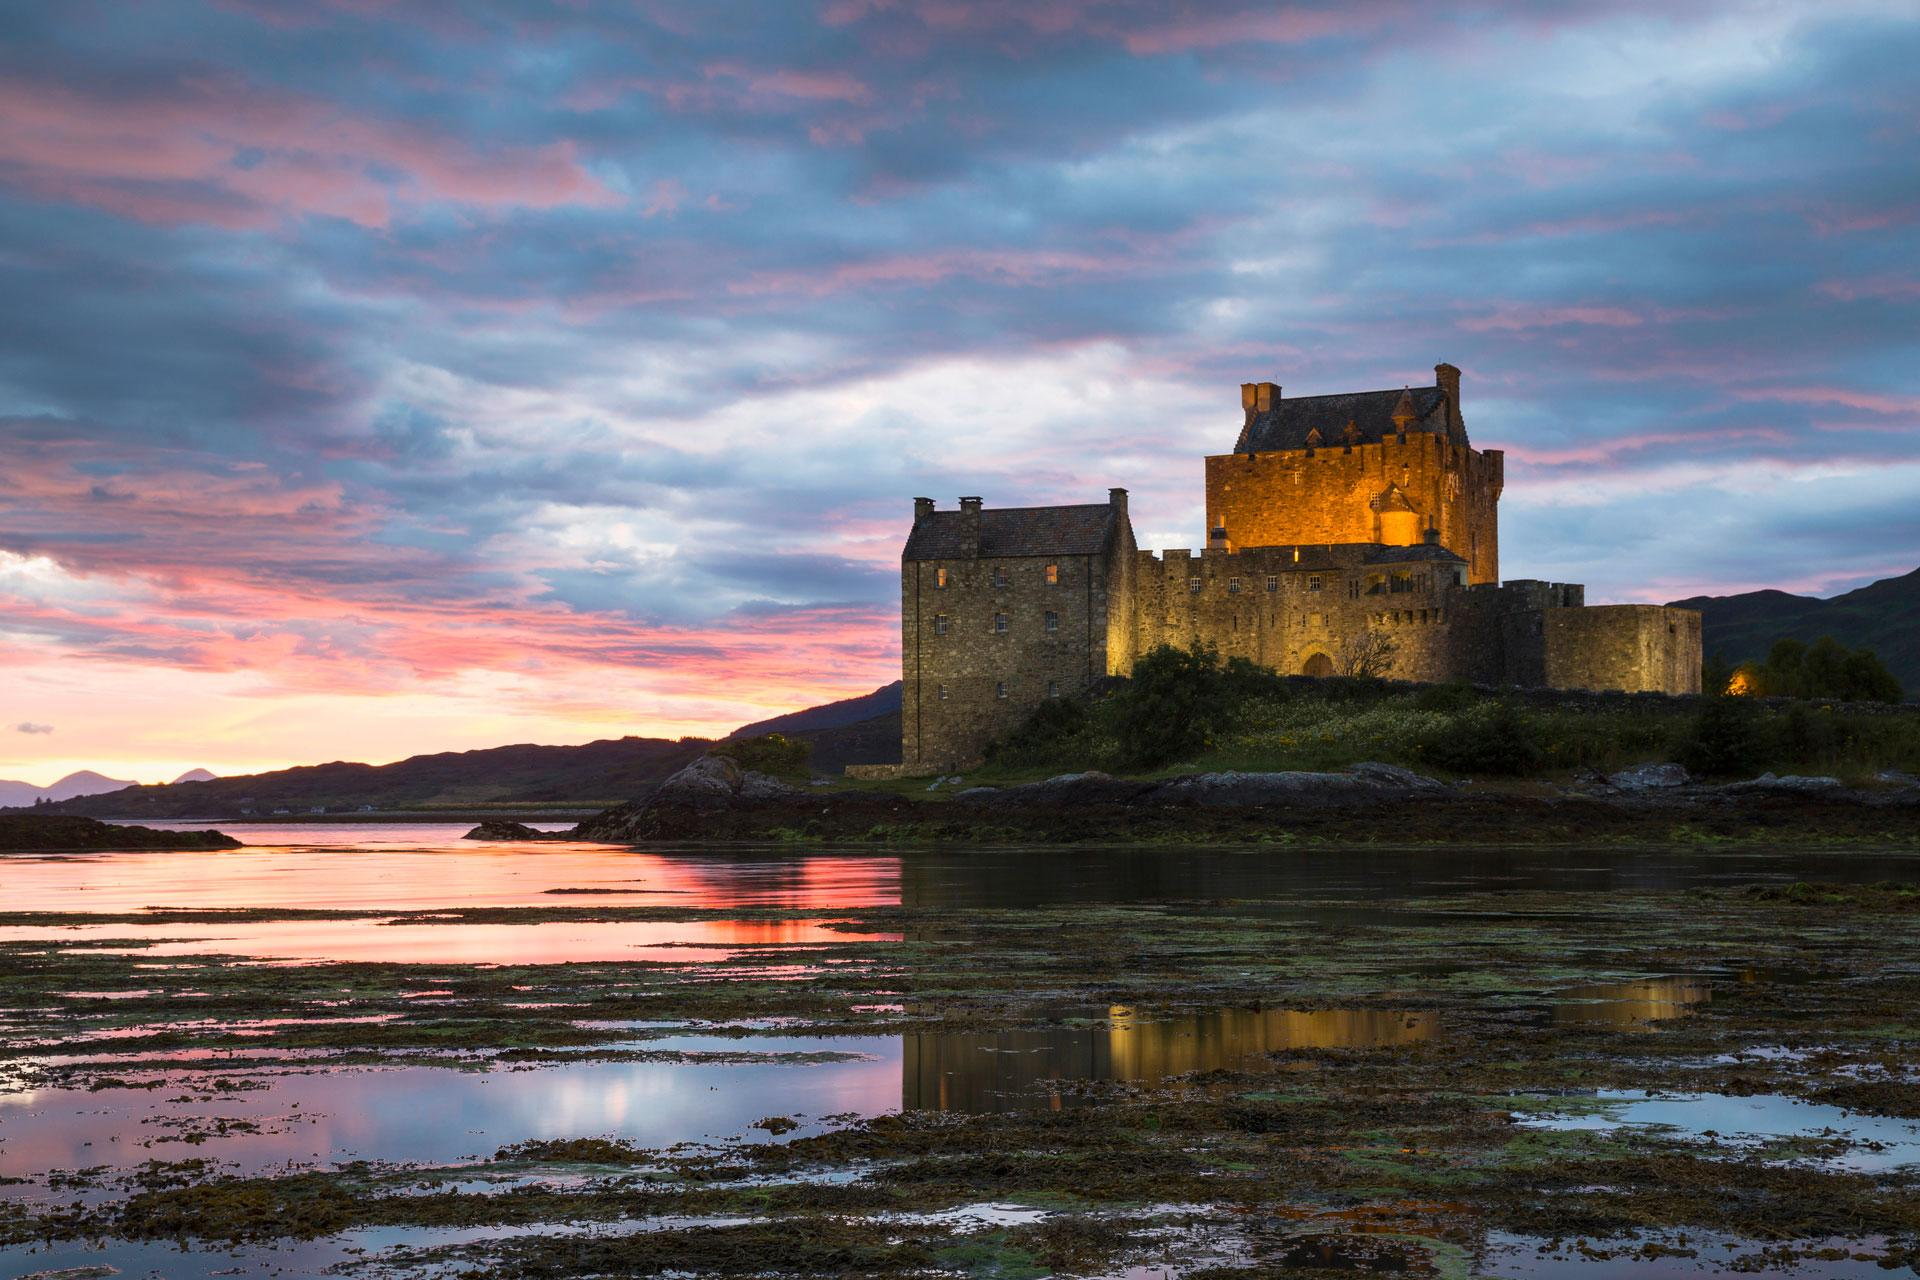 https://www.visitscotland.com/cms-images/about/eilean-donan-castle-sunset-blue-pink?view=Standard